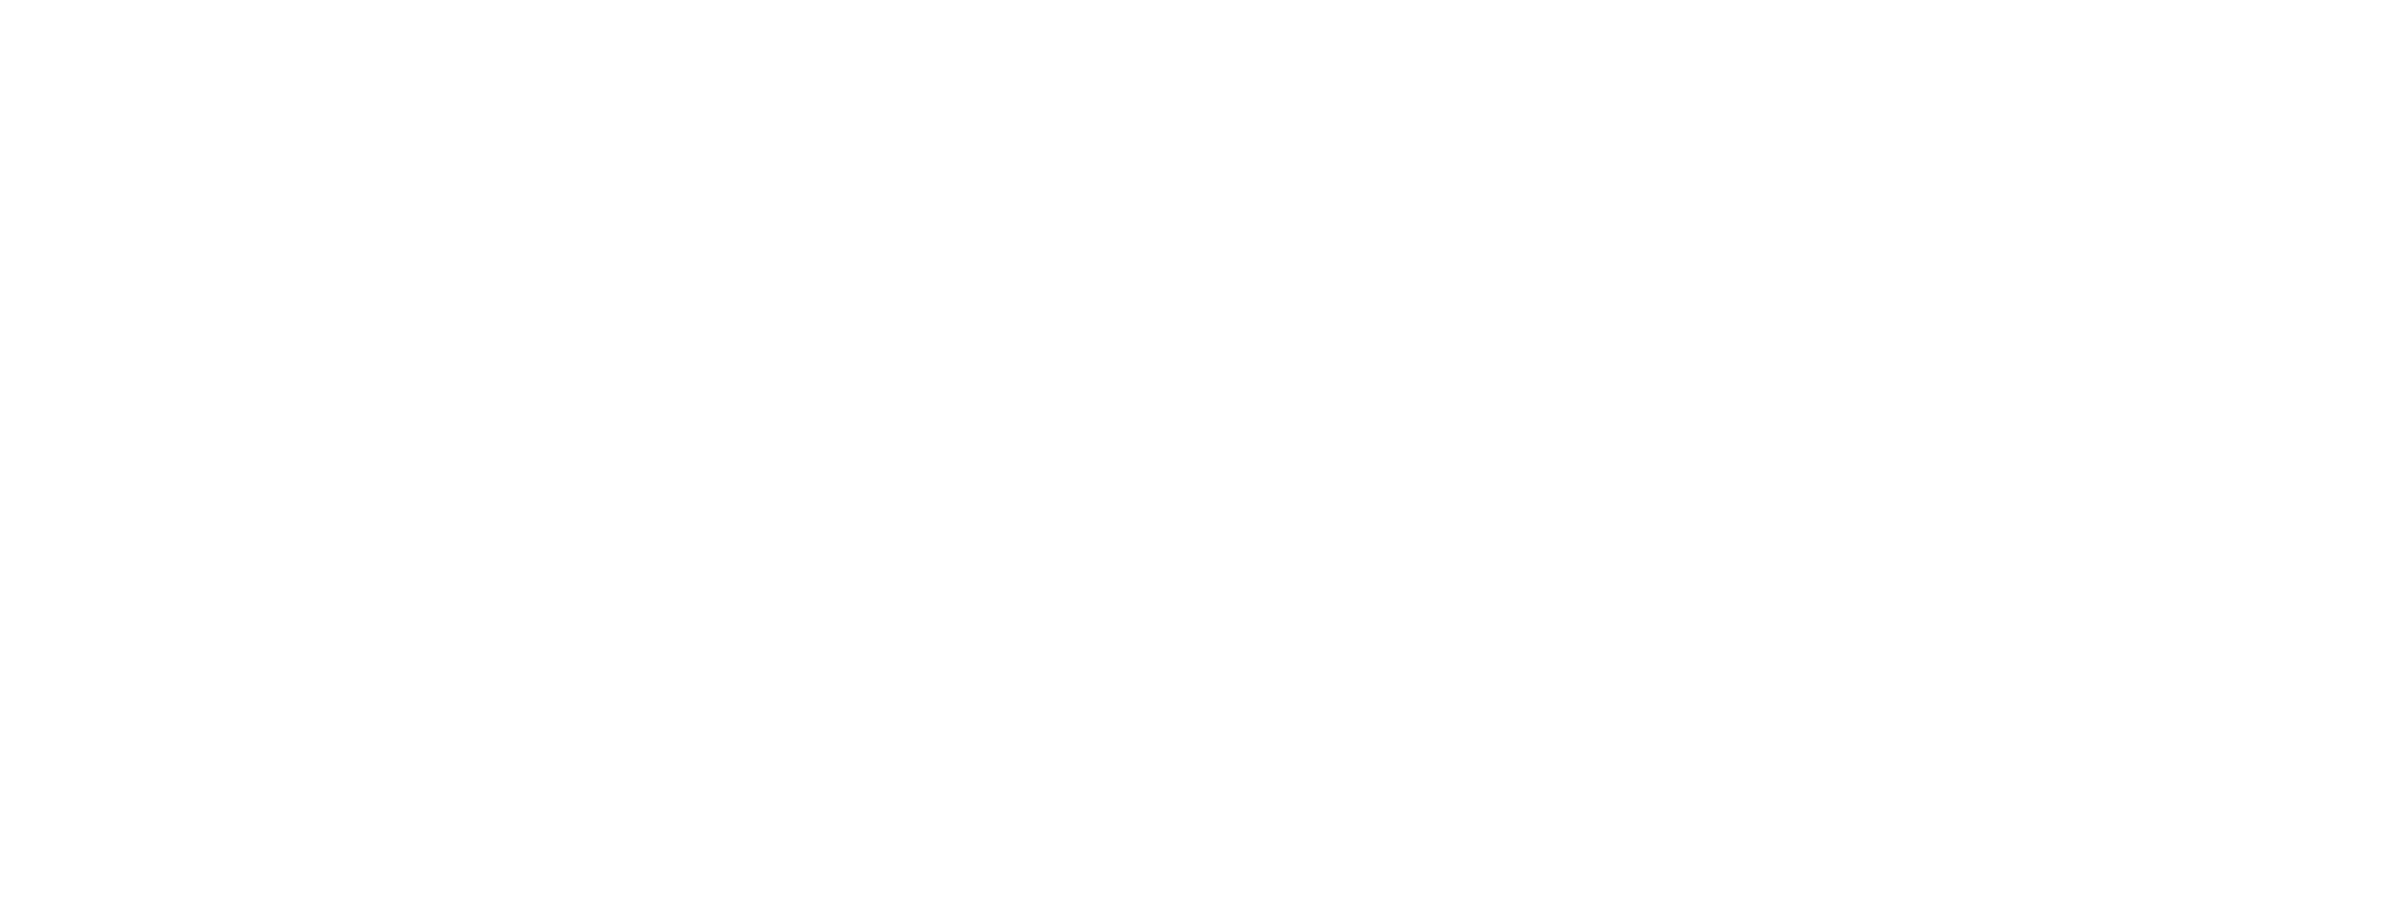 Maïlys Fortune Photography